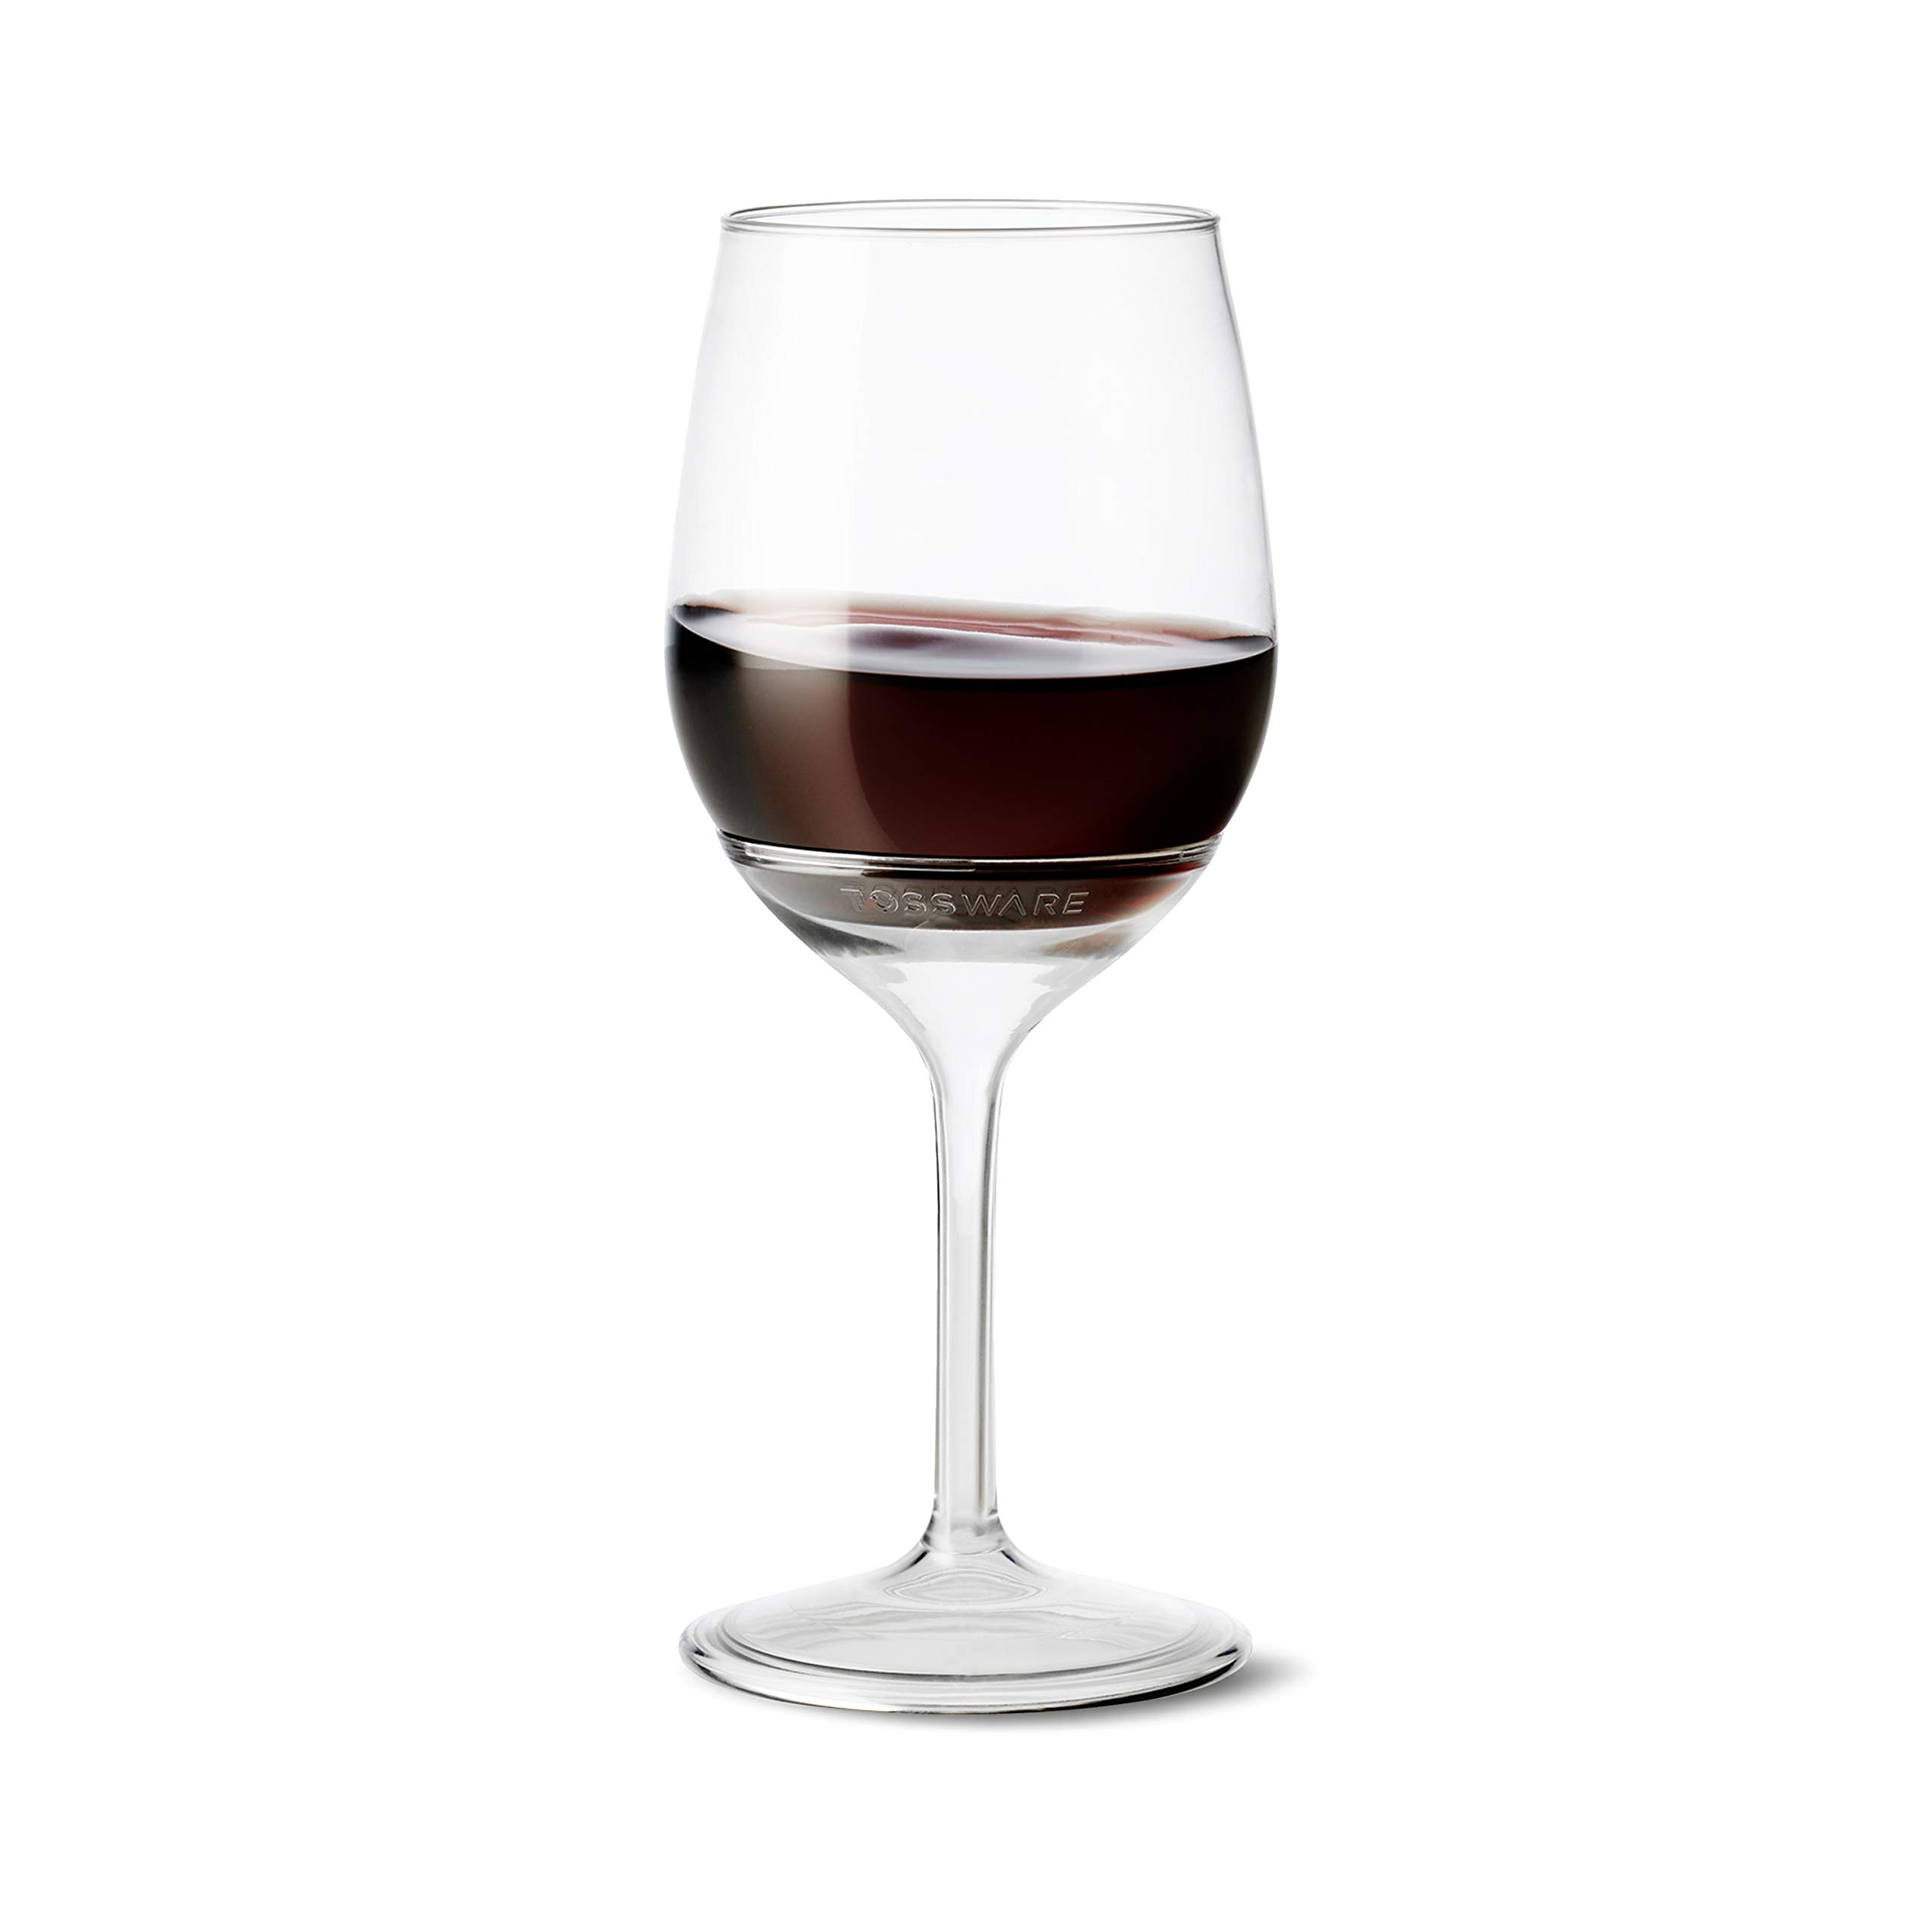 TOSSWARE VS01020047 14oz Stemmed Vino-Recyclable Wine Plastic Cup Detachable Shatterproof, and Bpa-Free Glasses, Set of 48, Clear